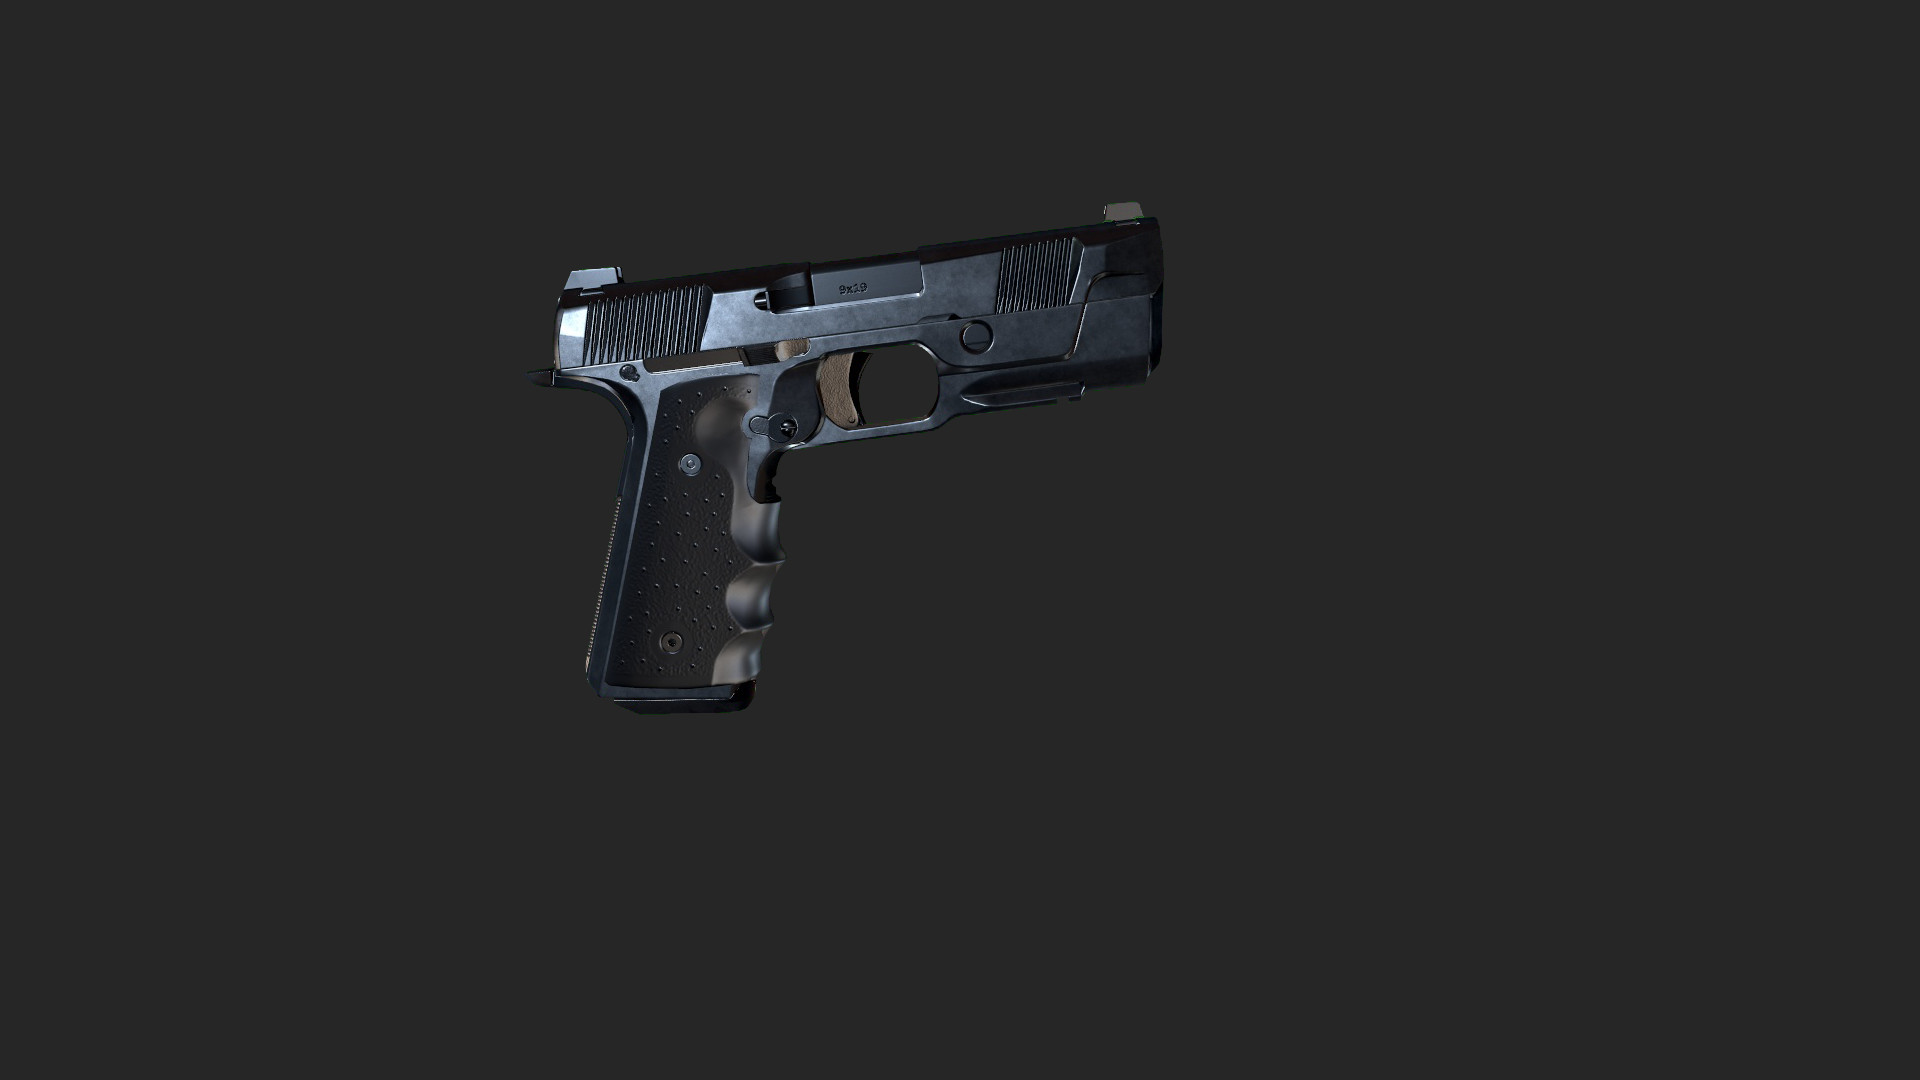 PAYDAY 2: Fugitive Weapon Pack